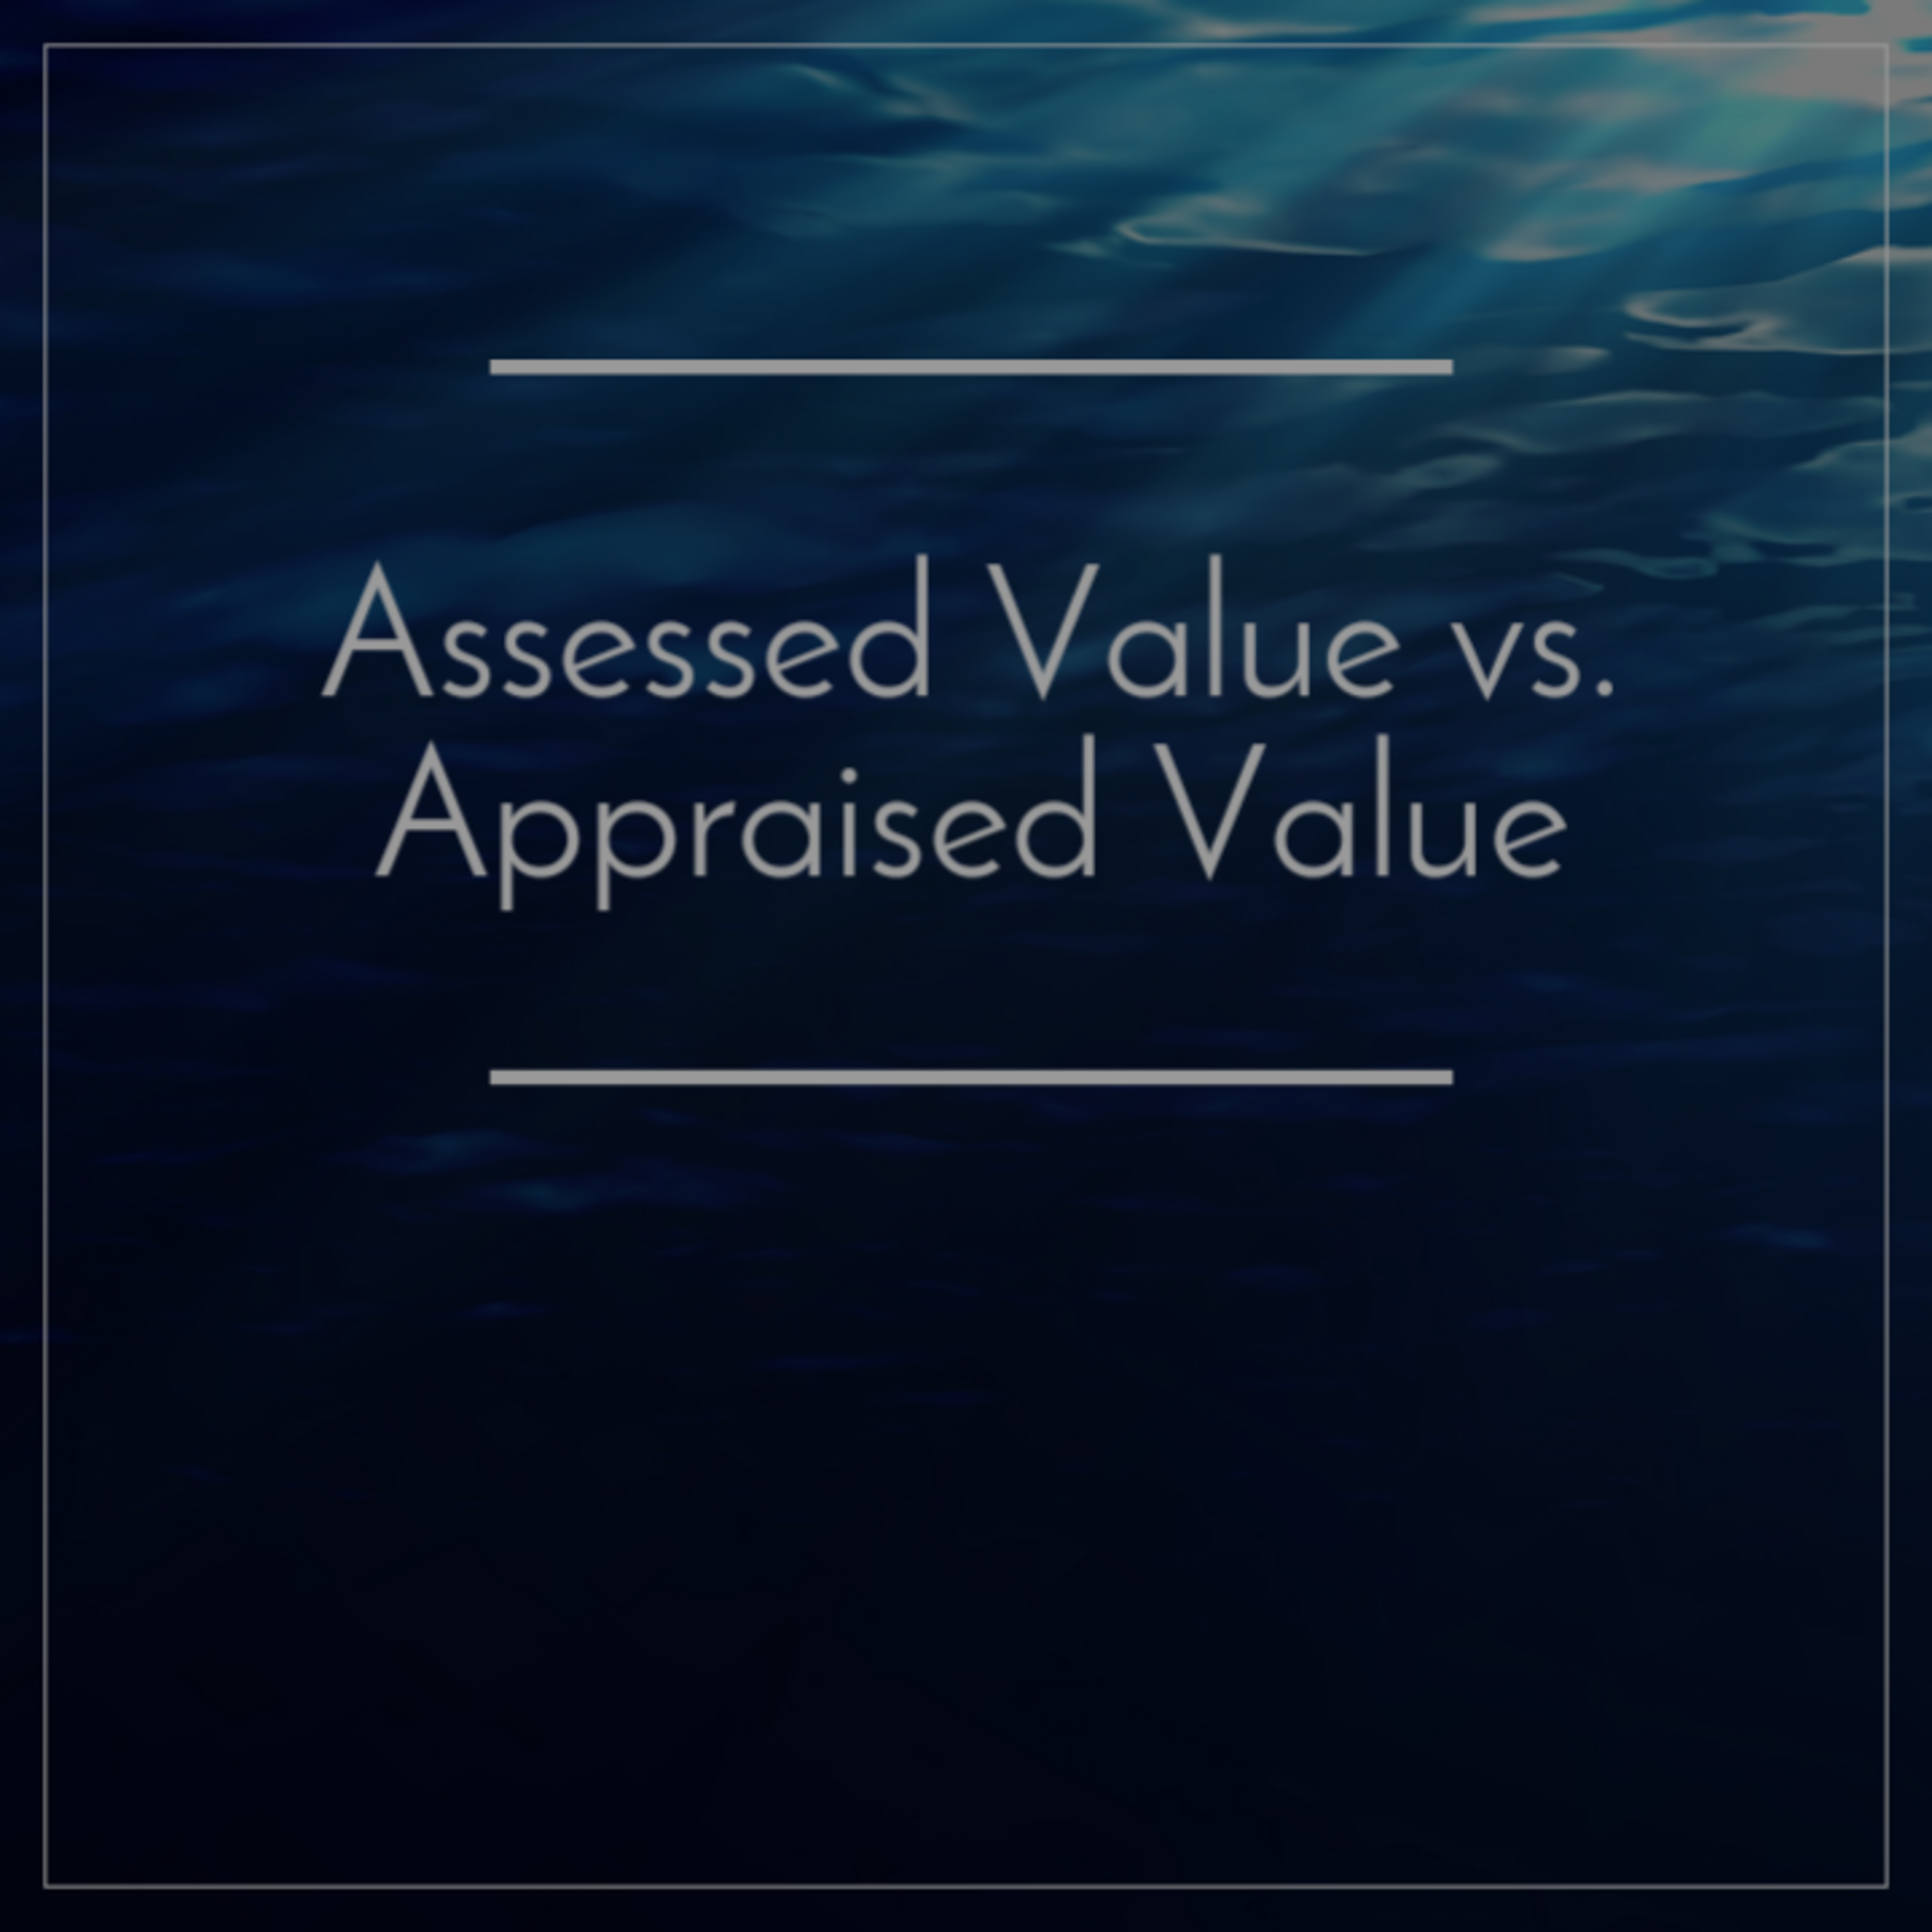 Episode 6: Appraised Value vs. Assessed Value